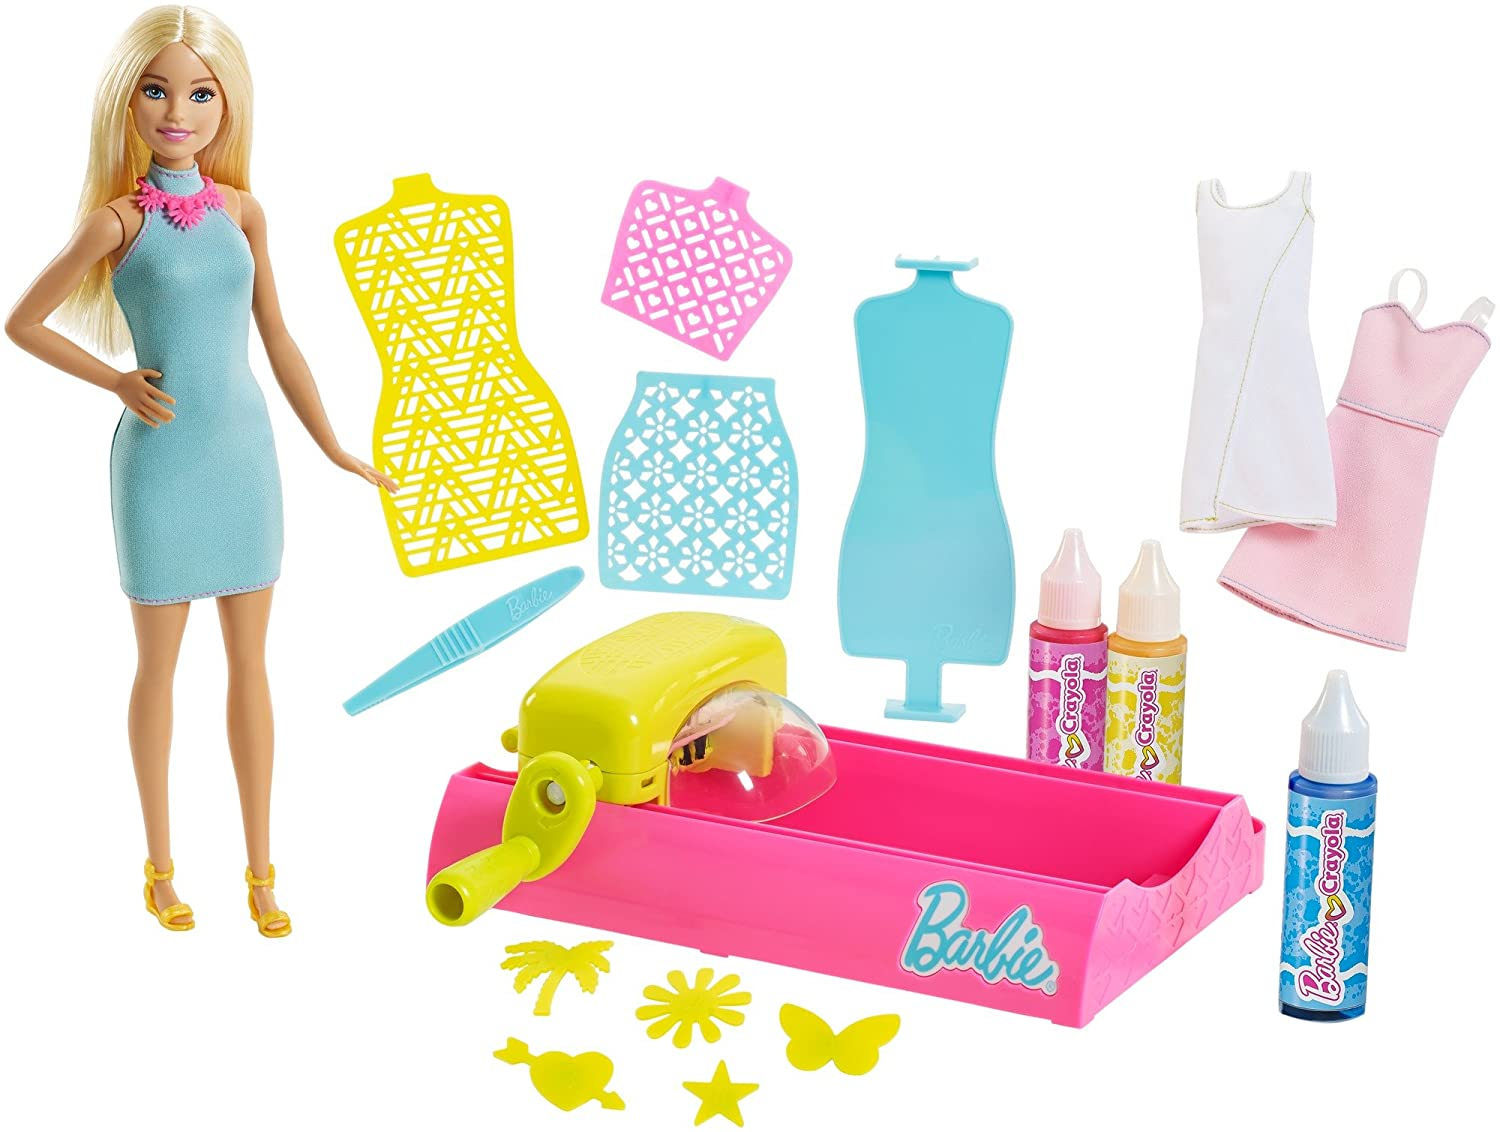 Barbie FPW10 Crayola Colour Magic Station Doll & Playset, Multi